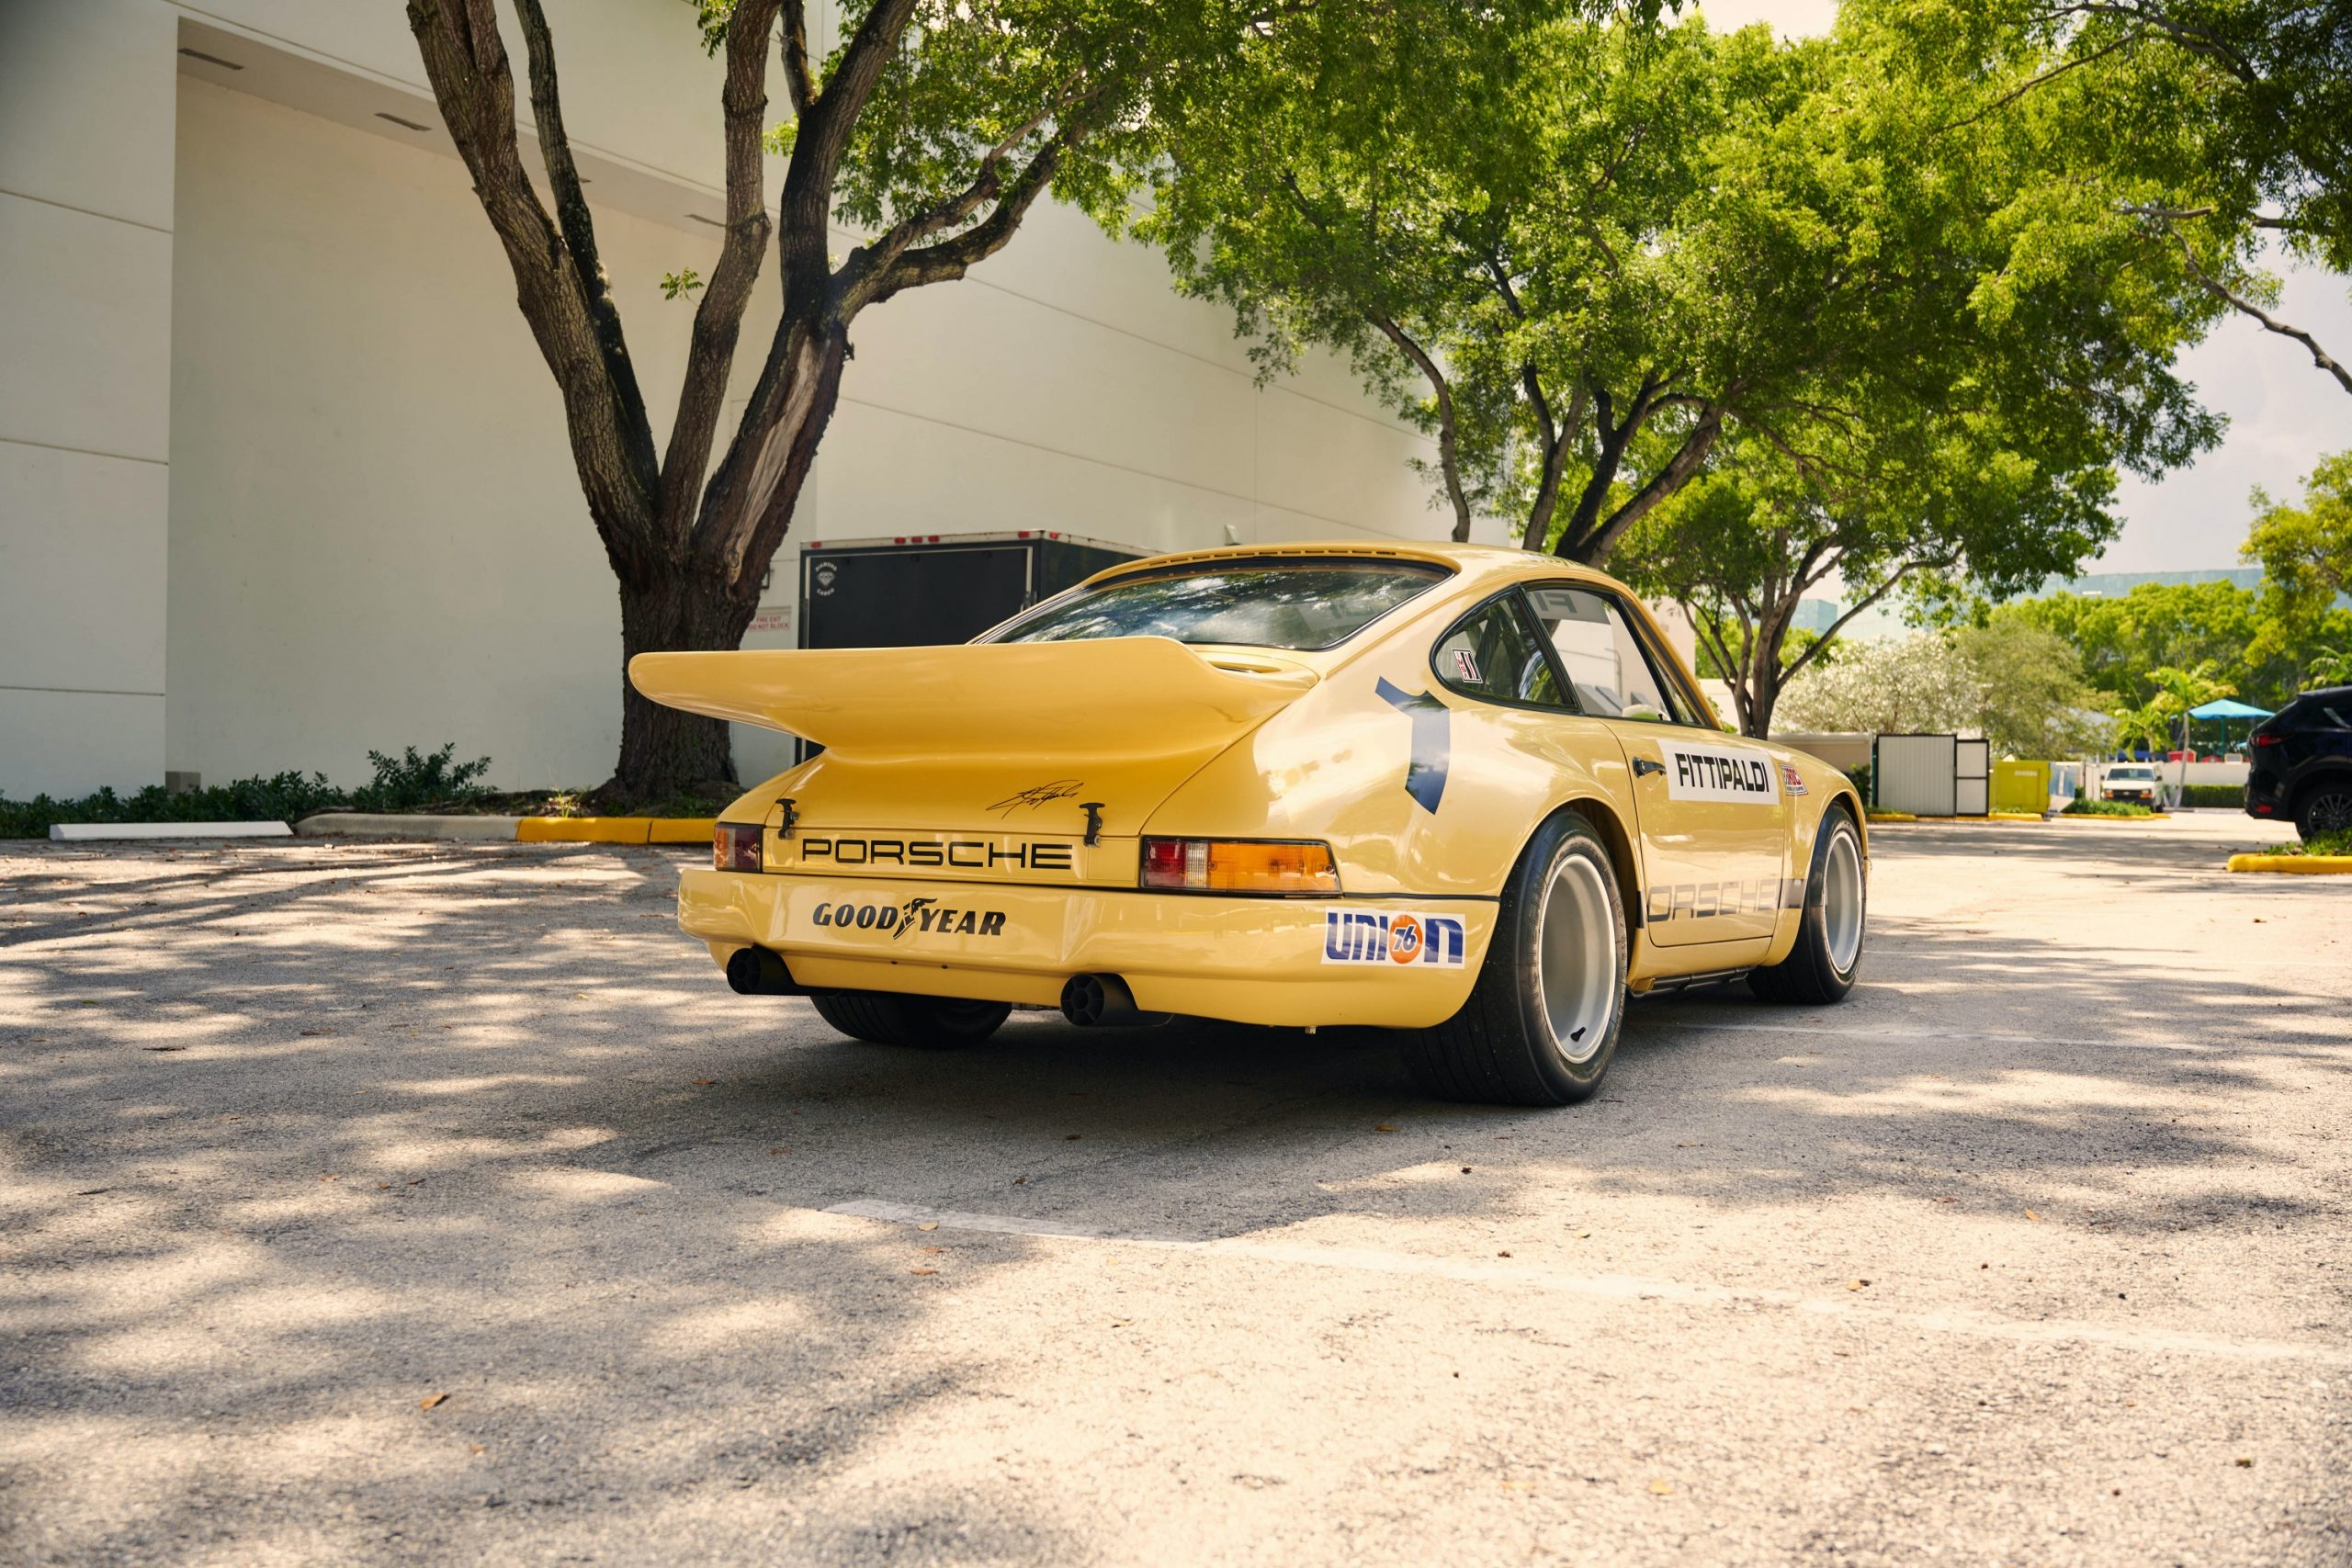 The rear of the Porsche 911 RSR race car owned by Pablo Escobar